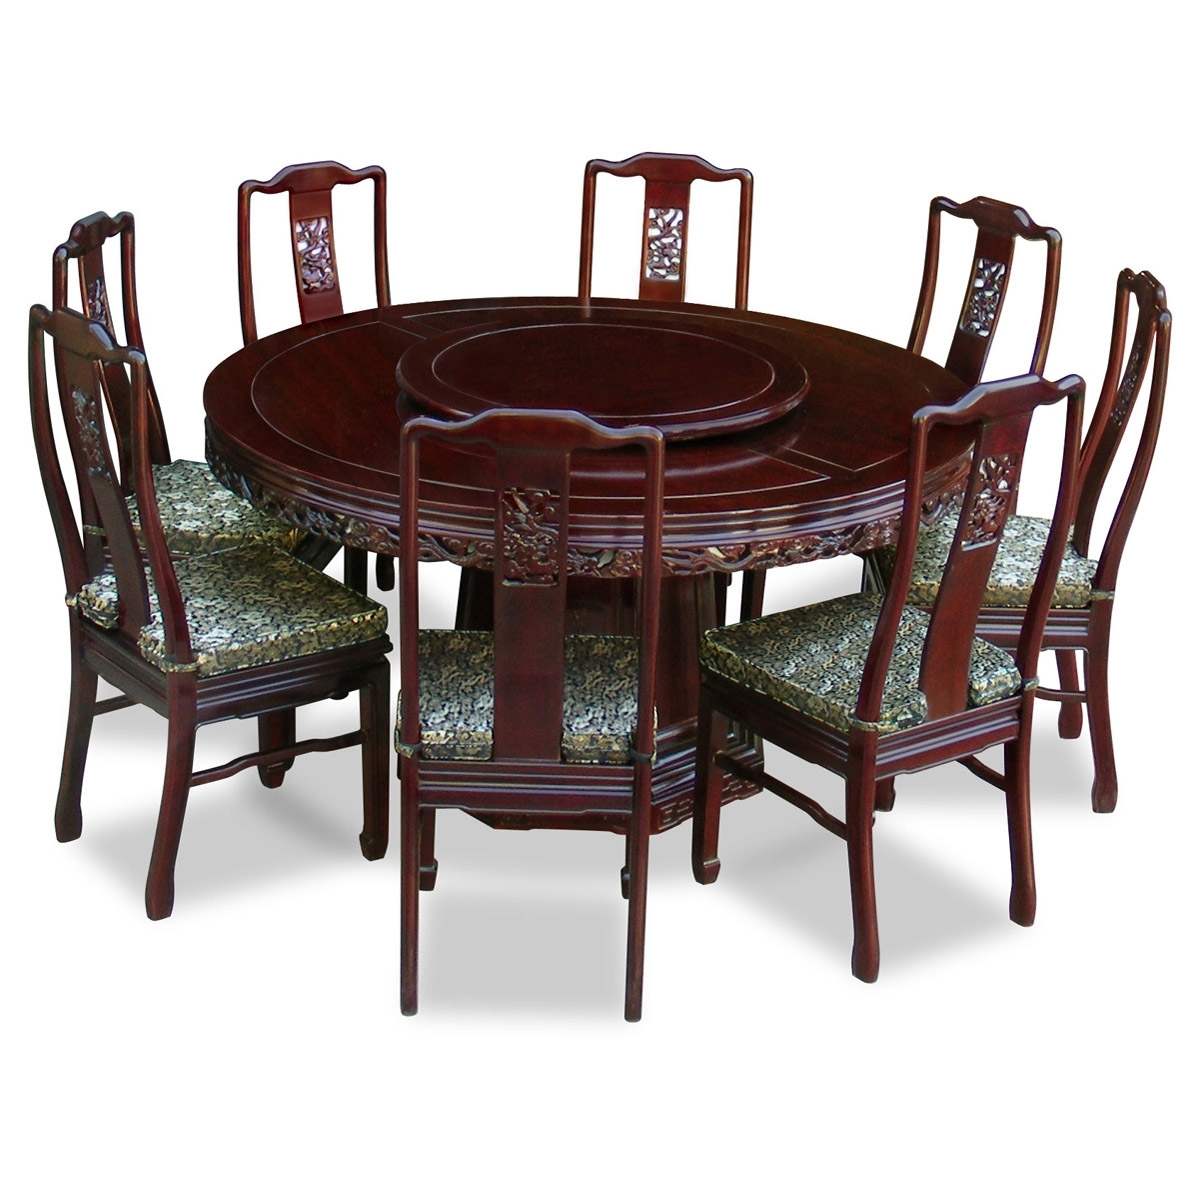 60In Rosewood Dragon Round Dining Table With 8 Chairs Inside Current Dining Tables With 8 Chairs (View 1 of 25)